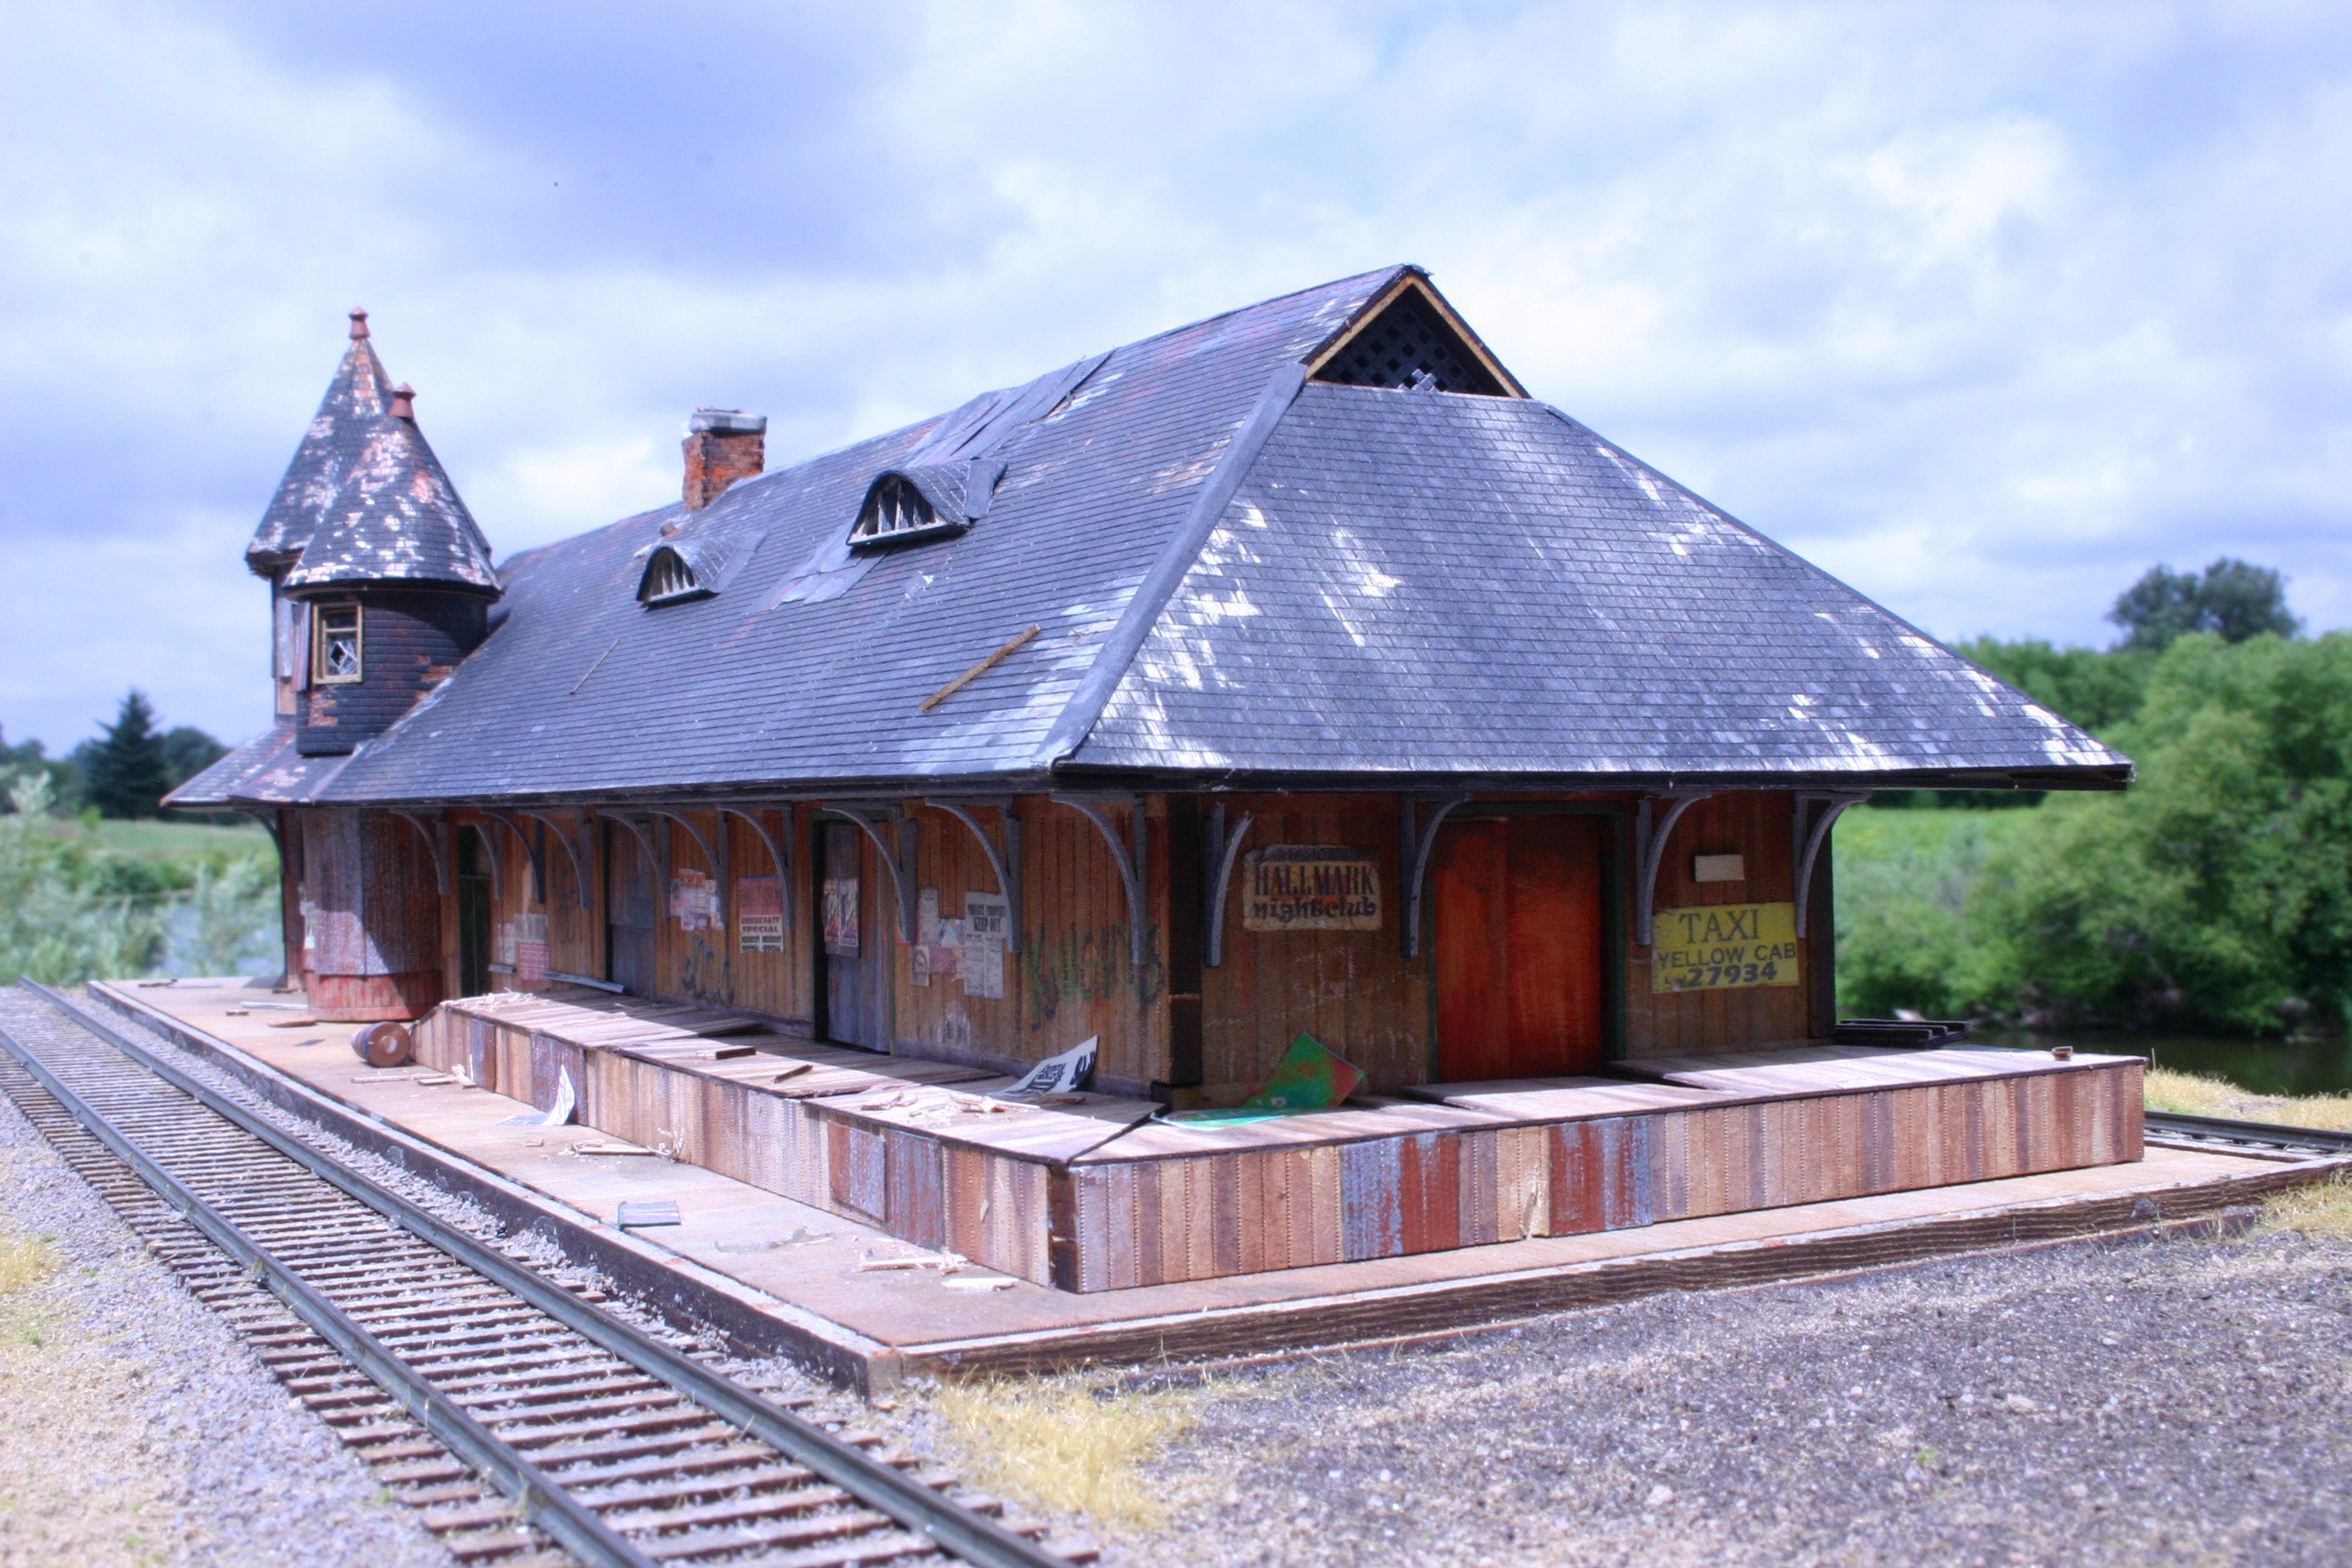 Custom Built - Grimsby Station - Derelict version - ITLA